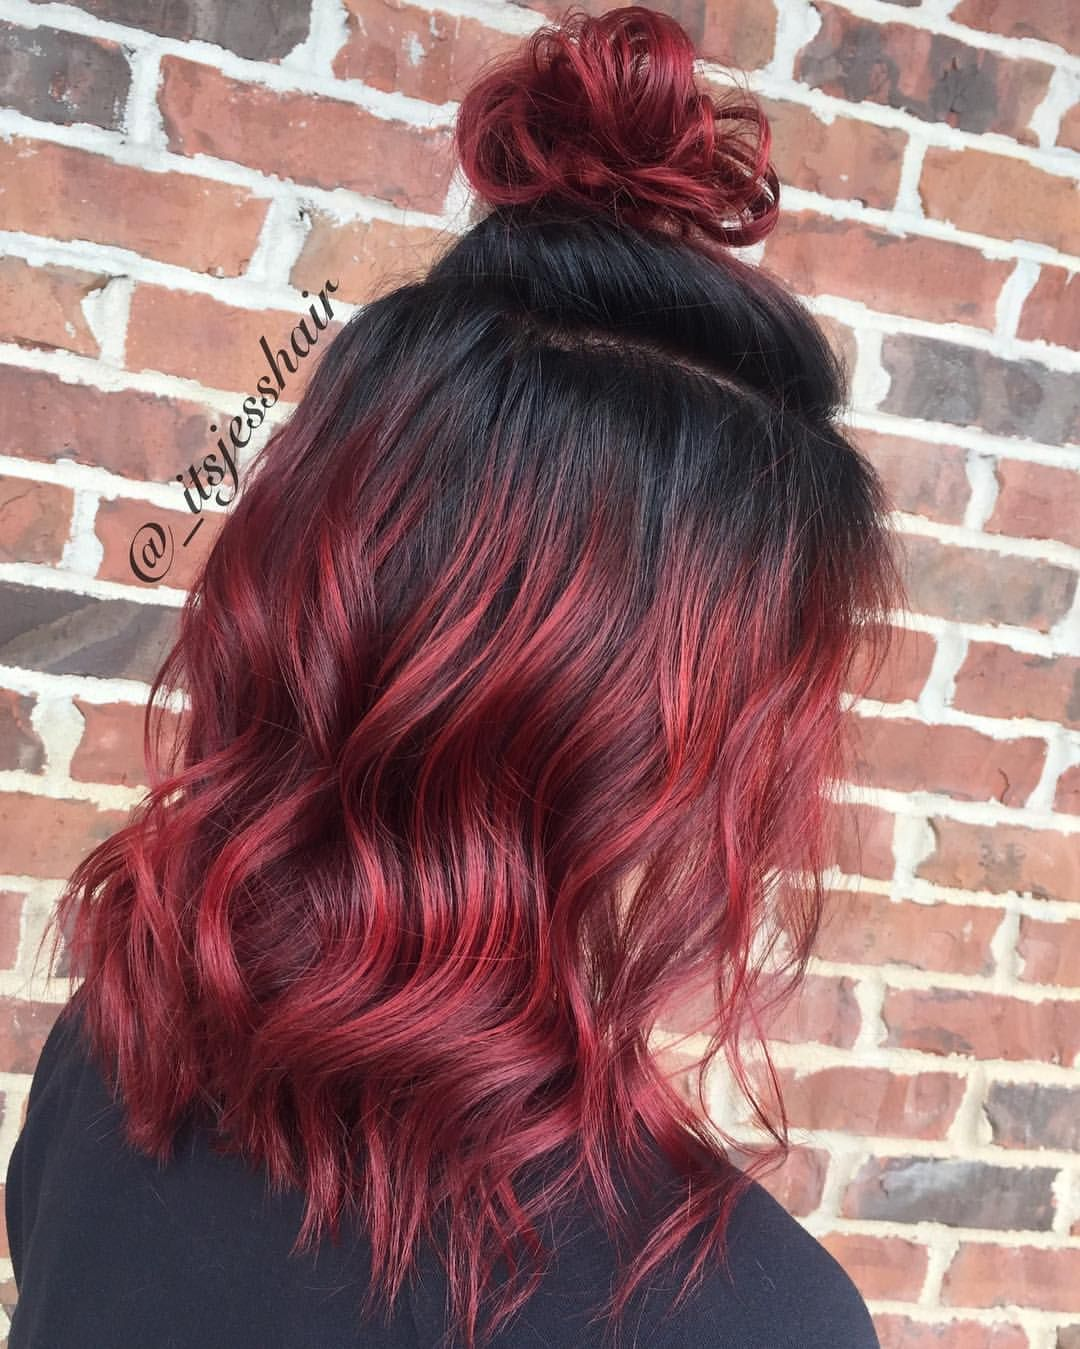 Red Hair With Shadow Root And Top Knot 54 Likes 2 Comments Jessica Knott Stylist Itsjesshair On Instagram Red Ombre Hair Burgundy Hair Hair Styles